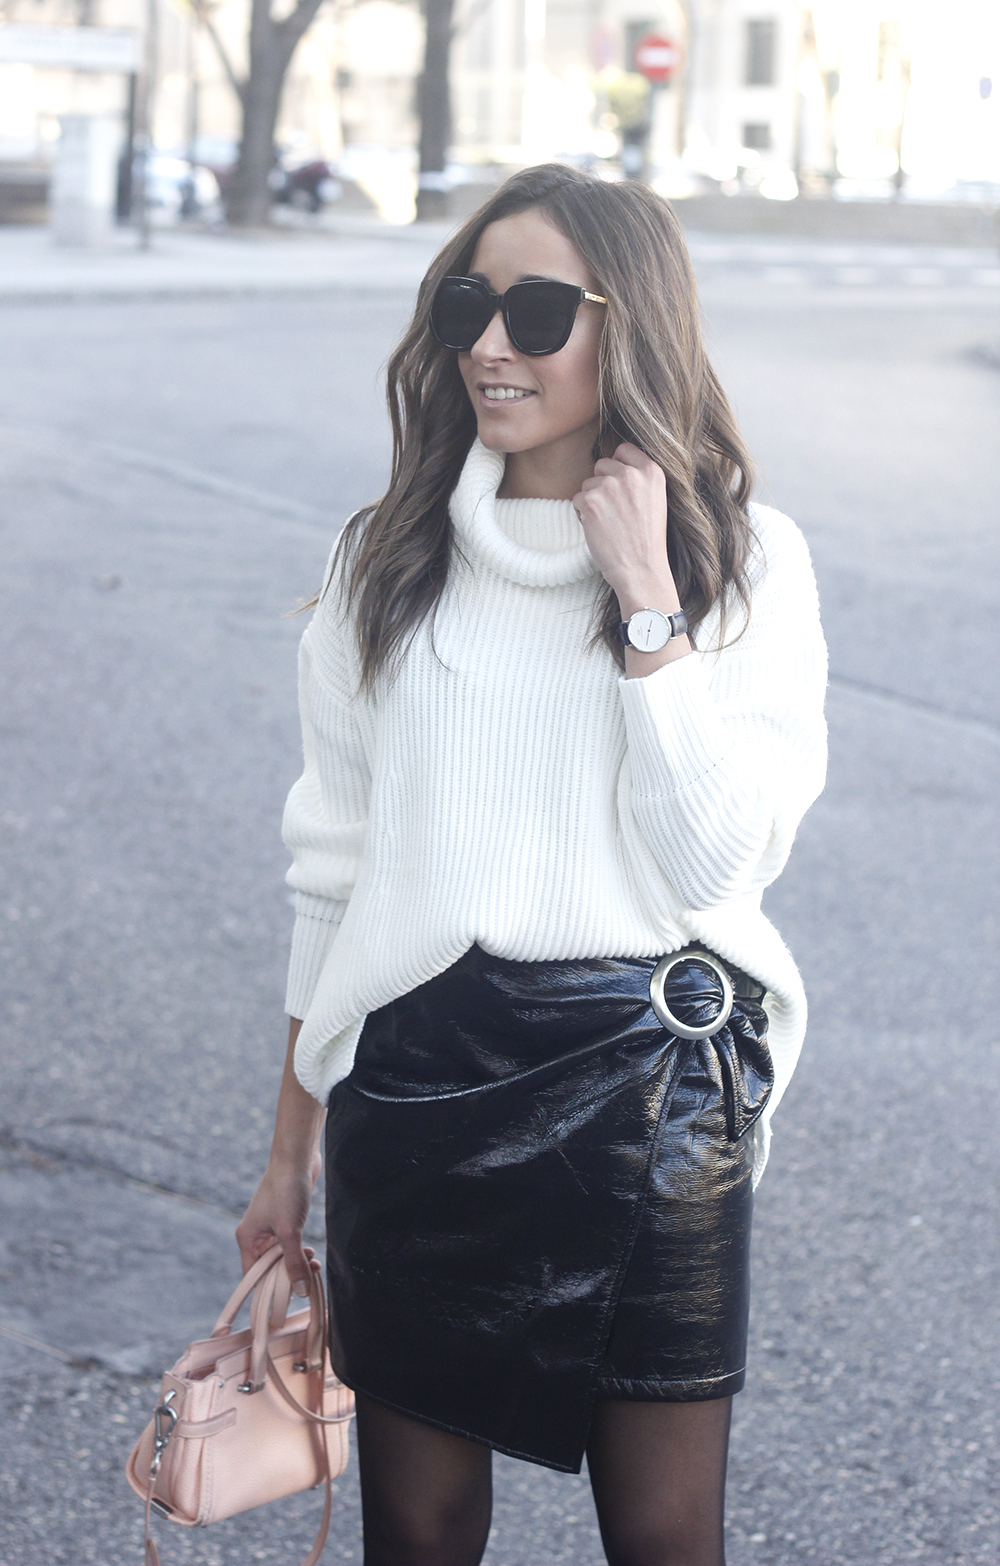 Black Patent leather skirt white sweater coach bag heels outfit style fashion winter19